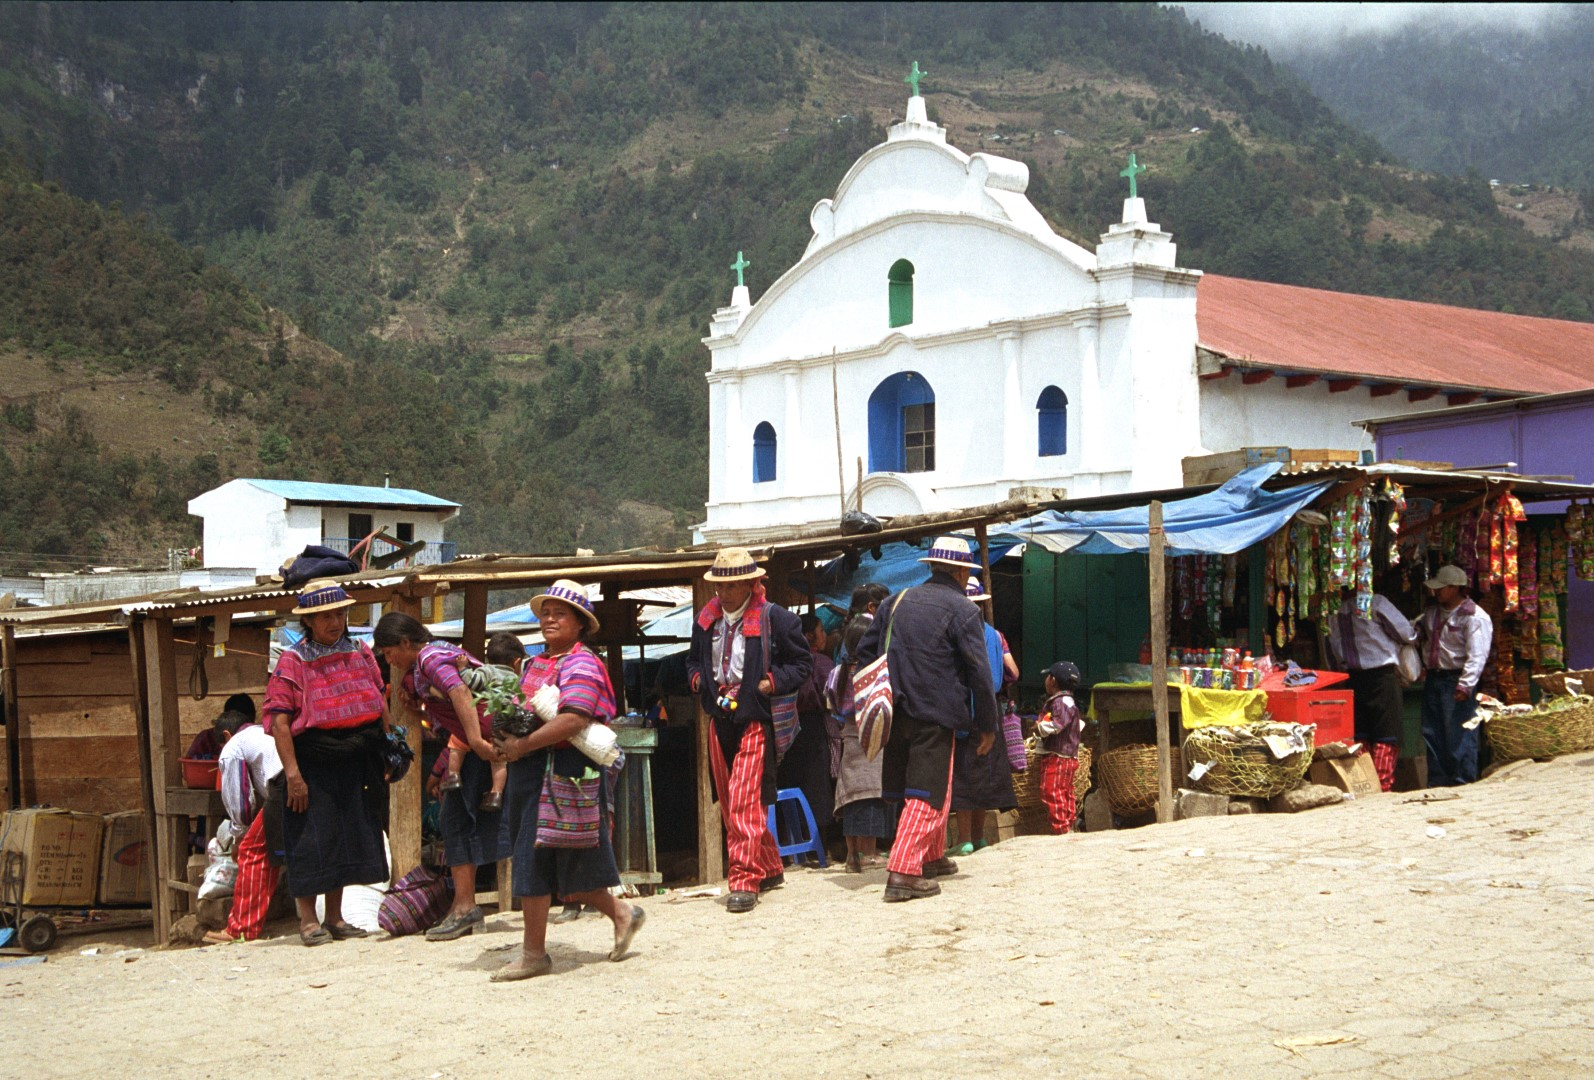 Mayan town in the Ixil Triangle of Guatemala